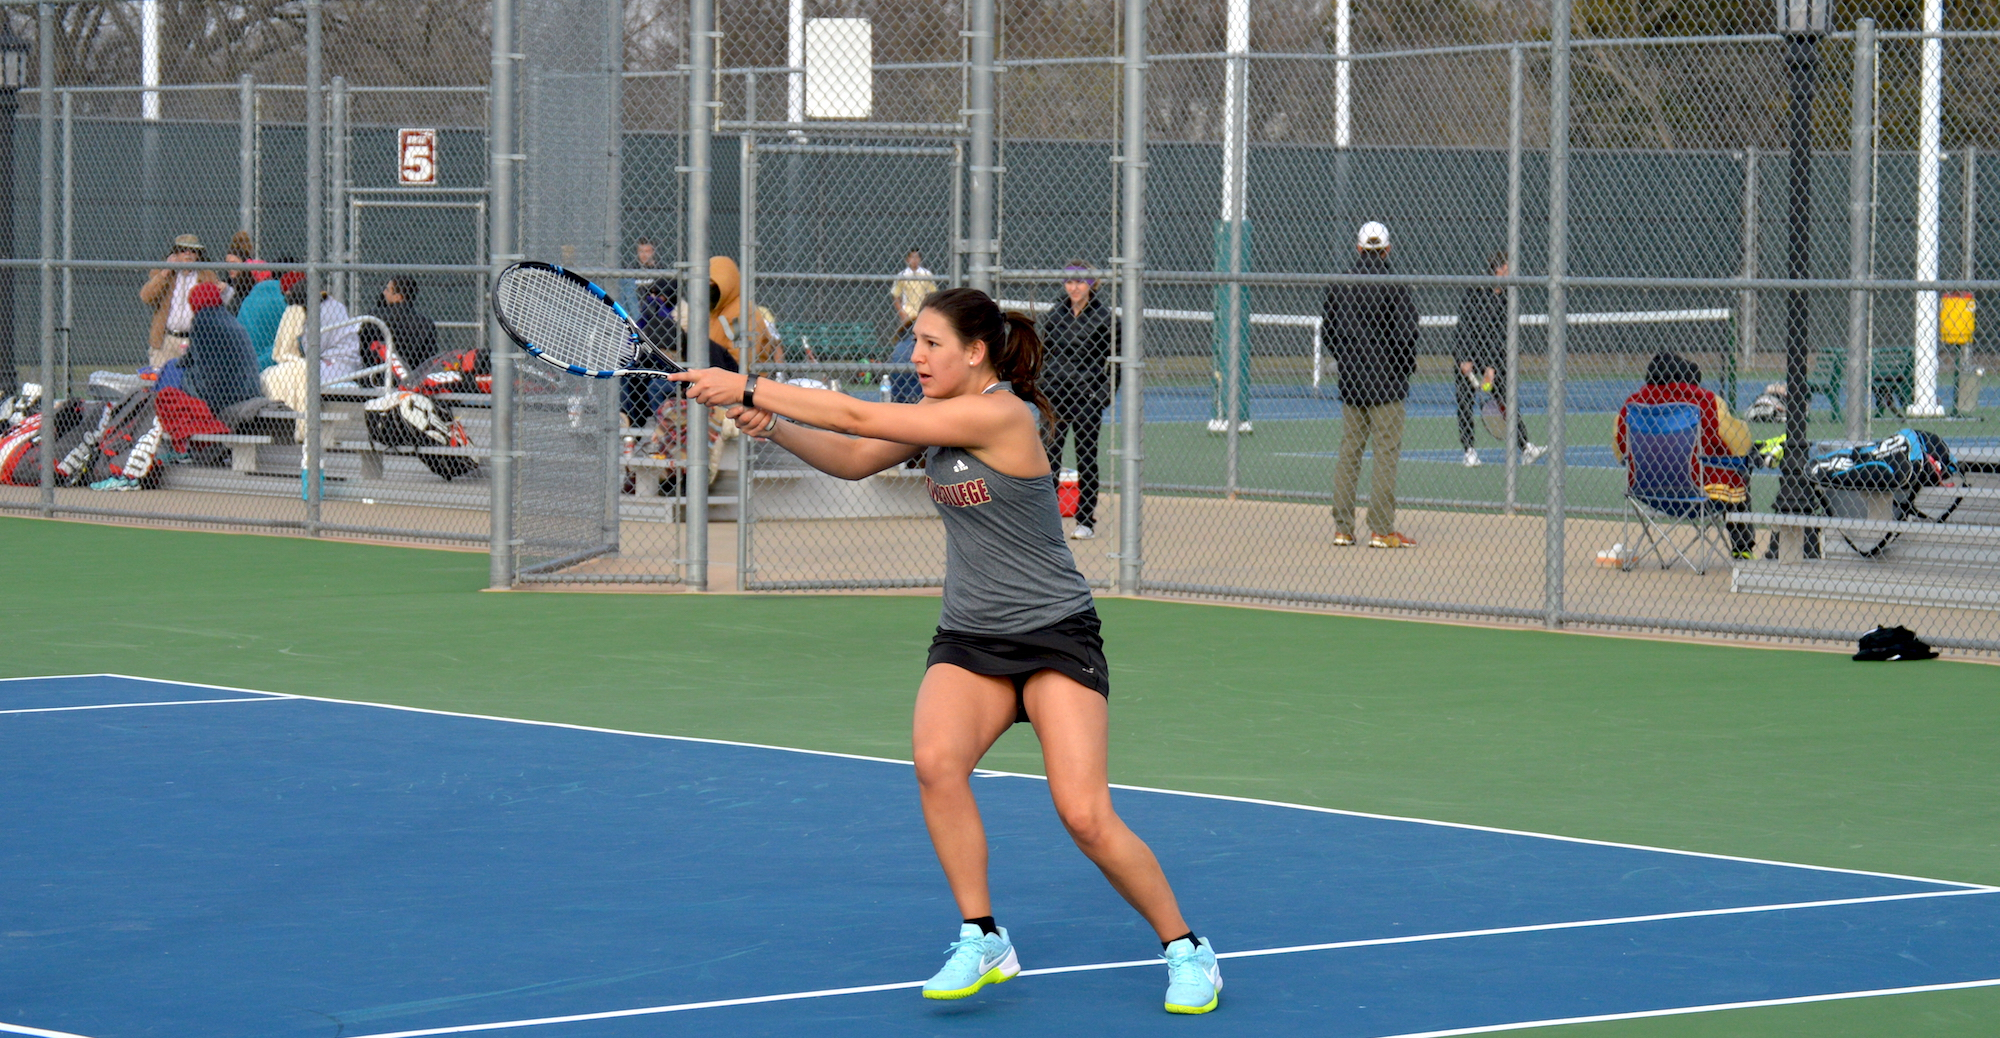 Women's Tennis Fall 9-0 to Patriots